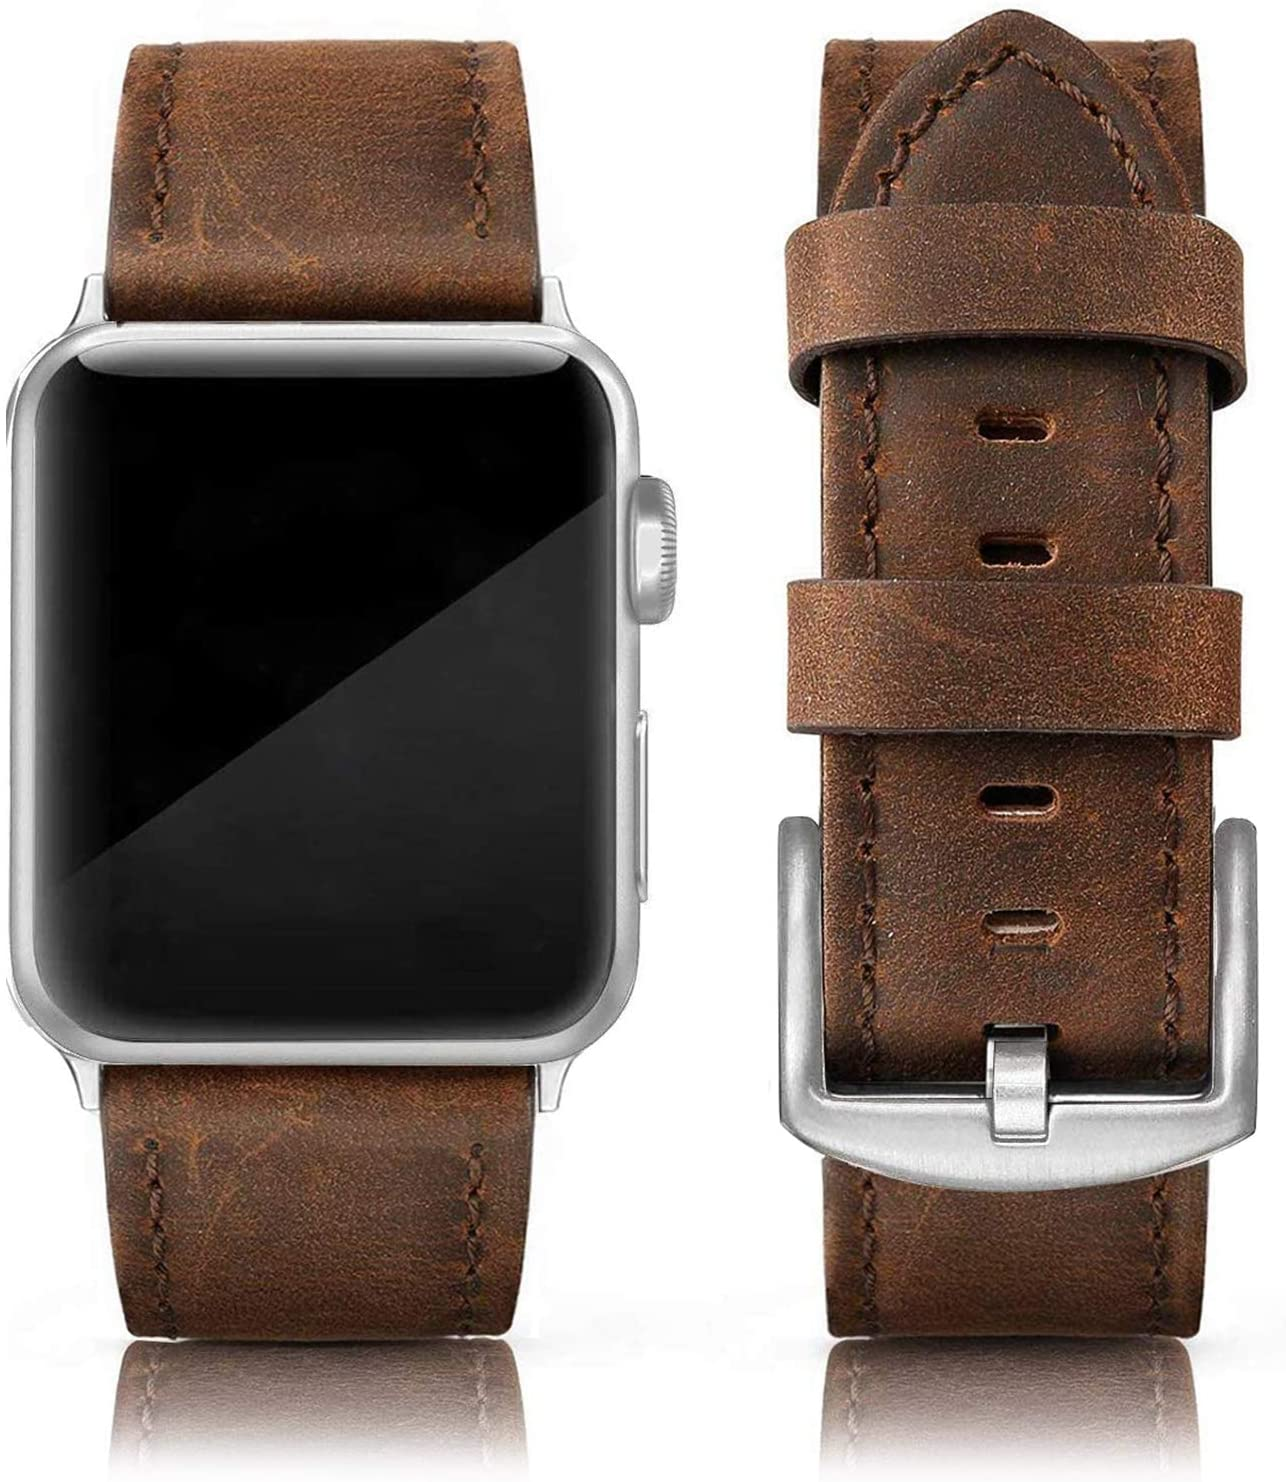 EDIMENS Leather Bands Compatible with Apple Watch 42mm 44mm Band Men Women, Vintage Genuine Leather Wristband Replacement Band Compatible for Apple Watch iwatch Series 6 5 4 3 2 1, SE Sports & Edition Retro Walnut(Silver Buckle))